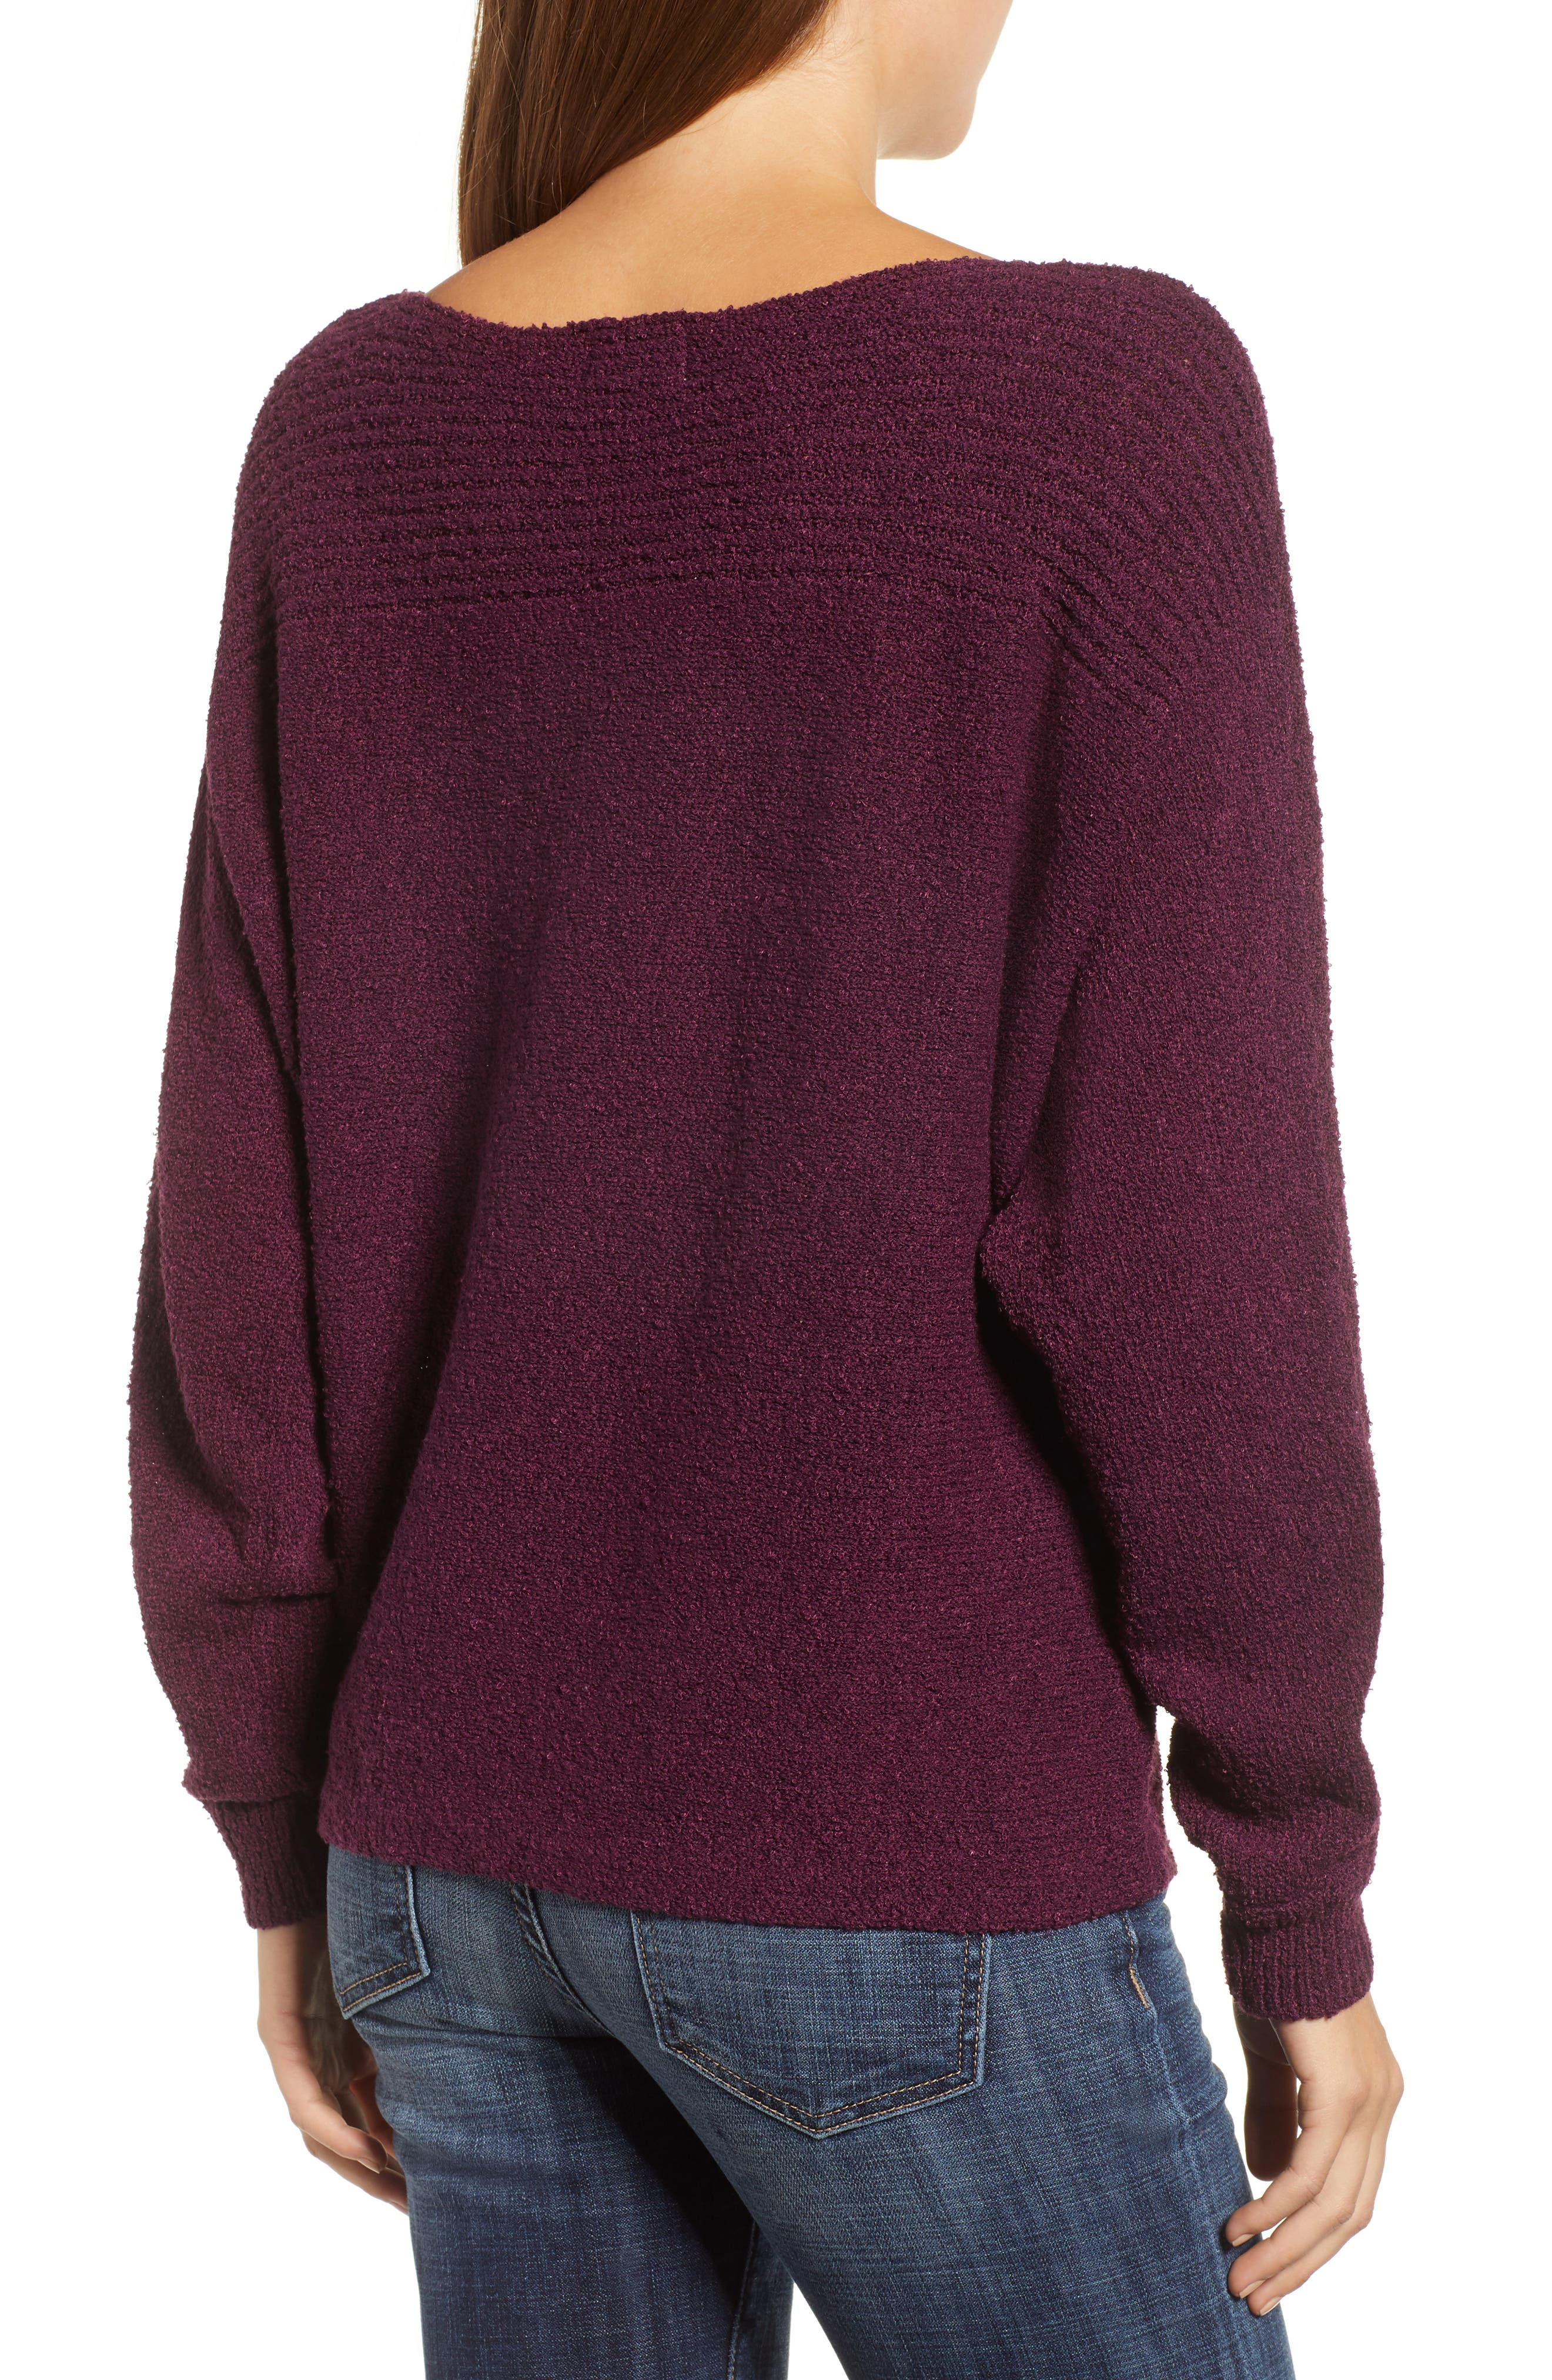 Calson<sup>®</sup> Dolman Sleeve Sweater,                             Alternate thumbnail 8, color,